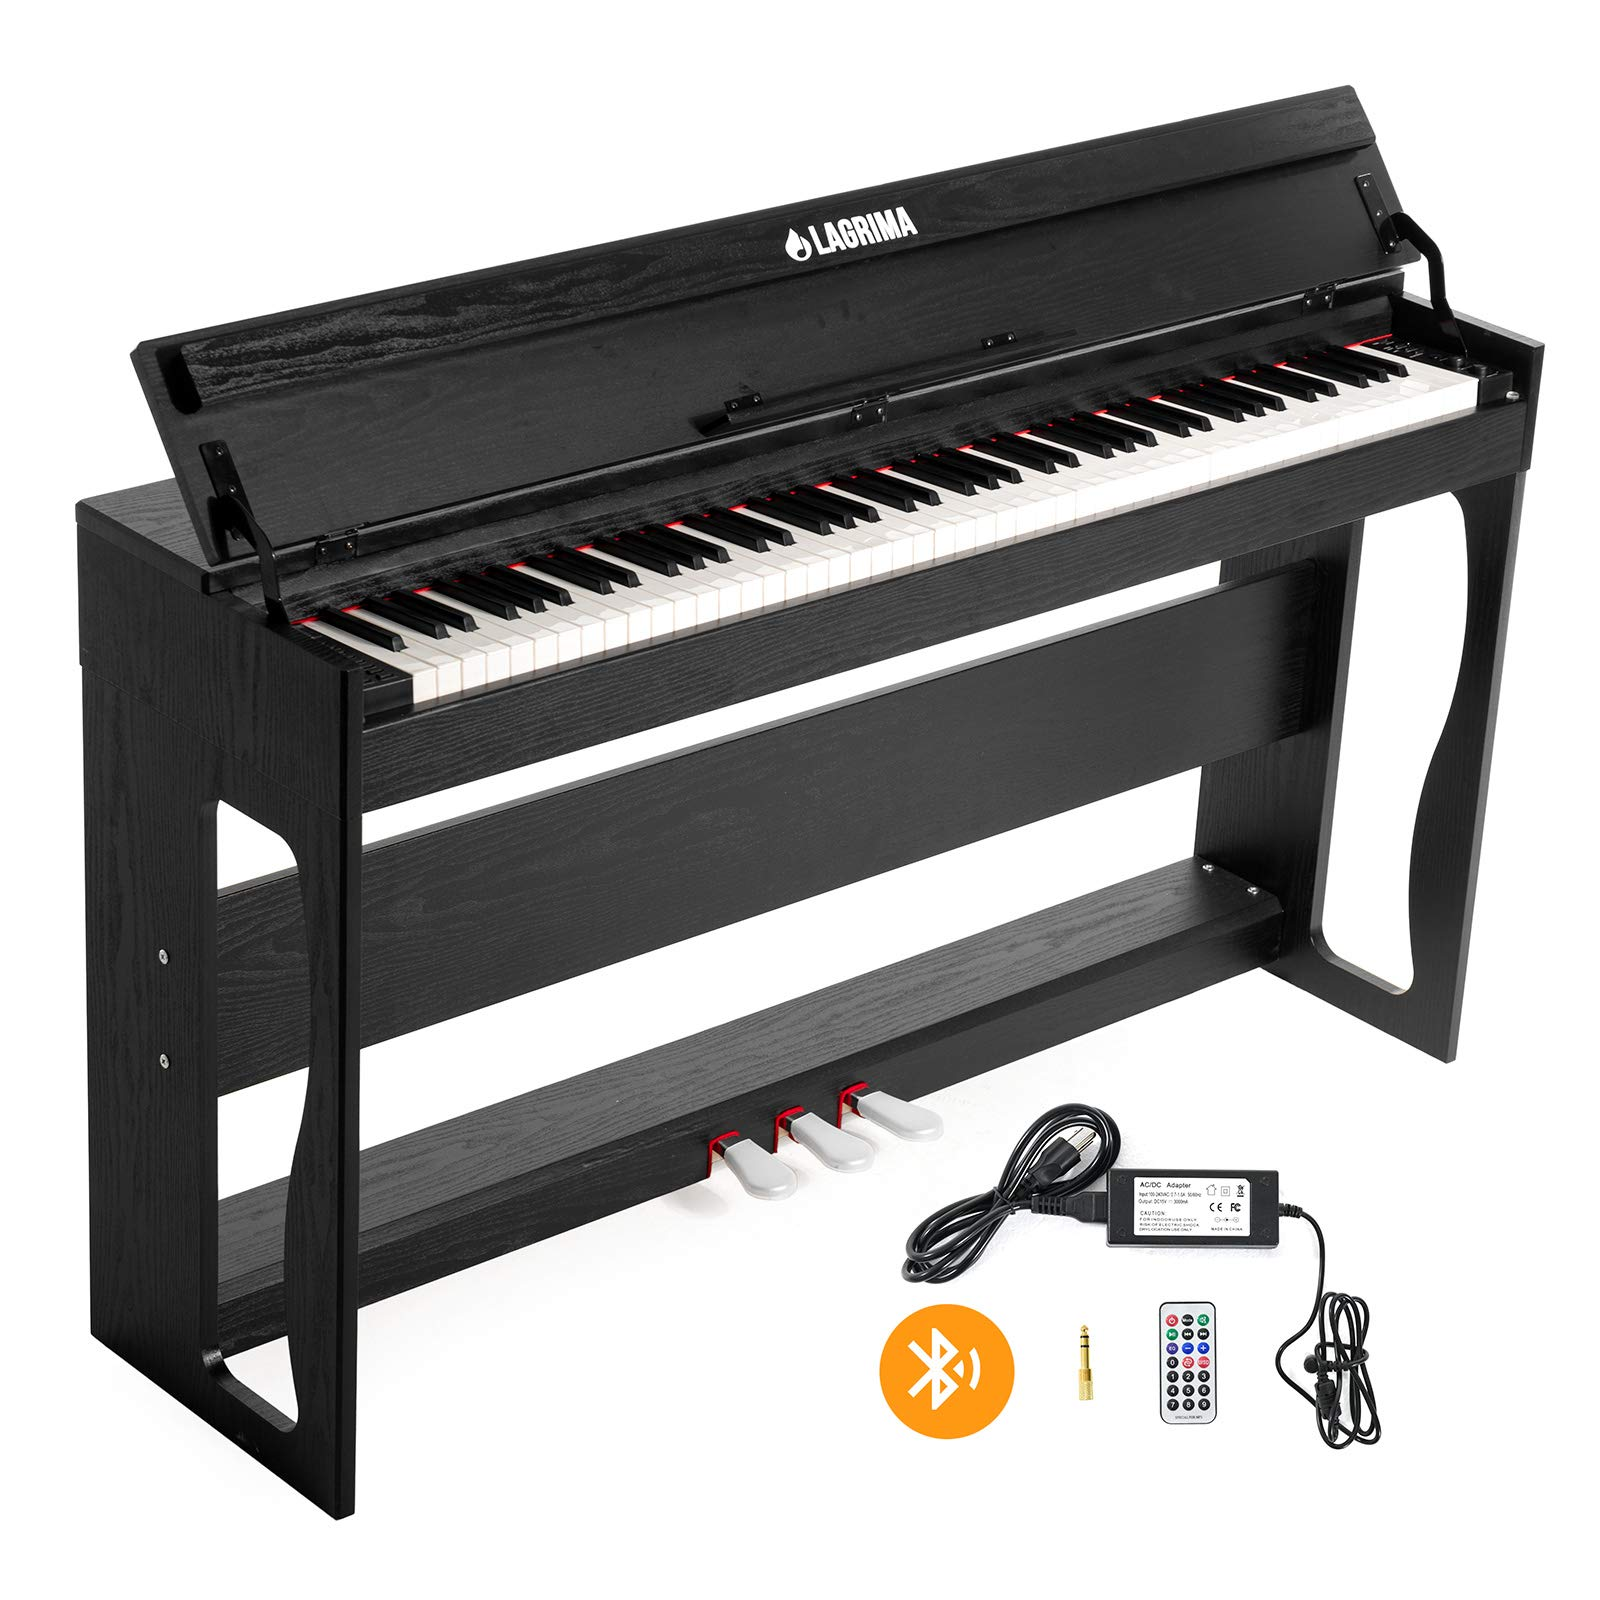 LAGRIMA 88 Key Weighted Digital Piano w/Bluetooth&MP3 Function, USB/MIDI/Headphone/Mic/Audio Output Feature, Suit for Kids, Teen, Adult, Beginner or Training Institution by LAGRIMA